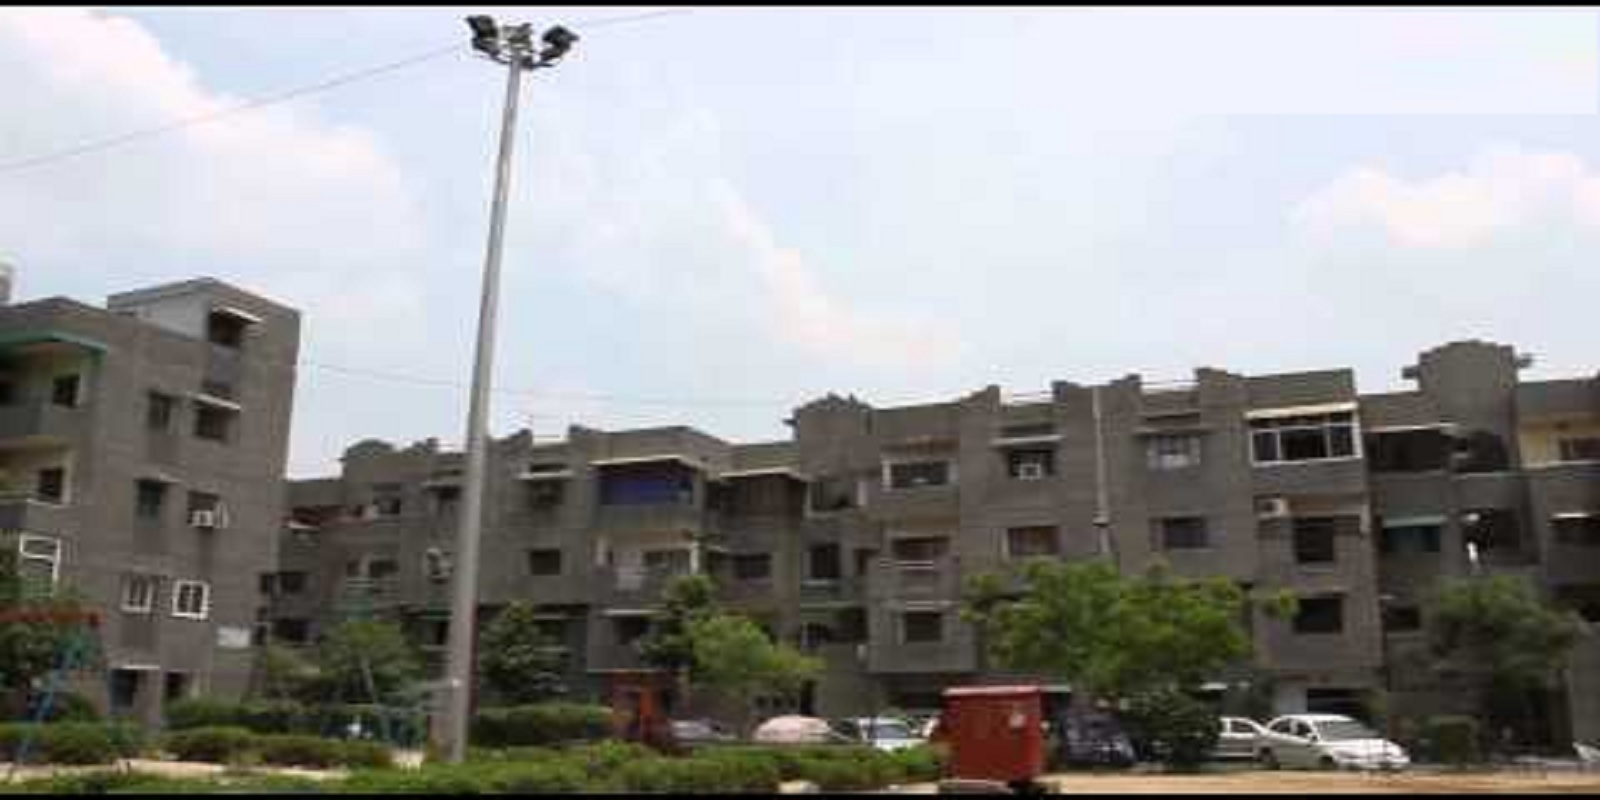 dda shubham apartments project project large image1